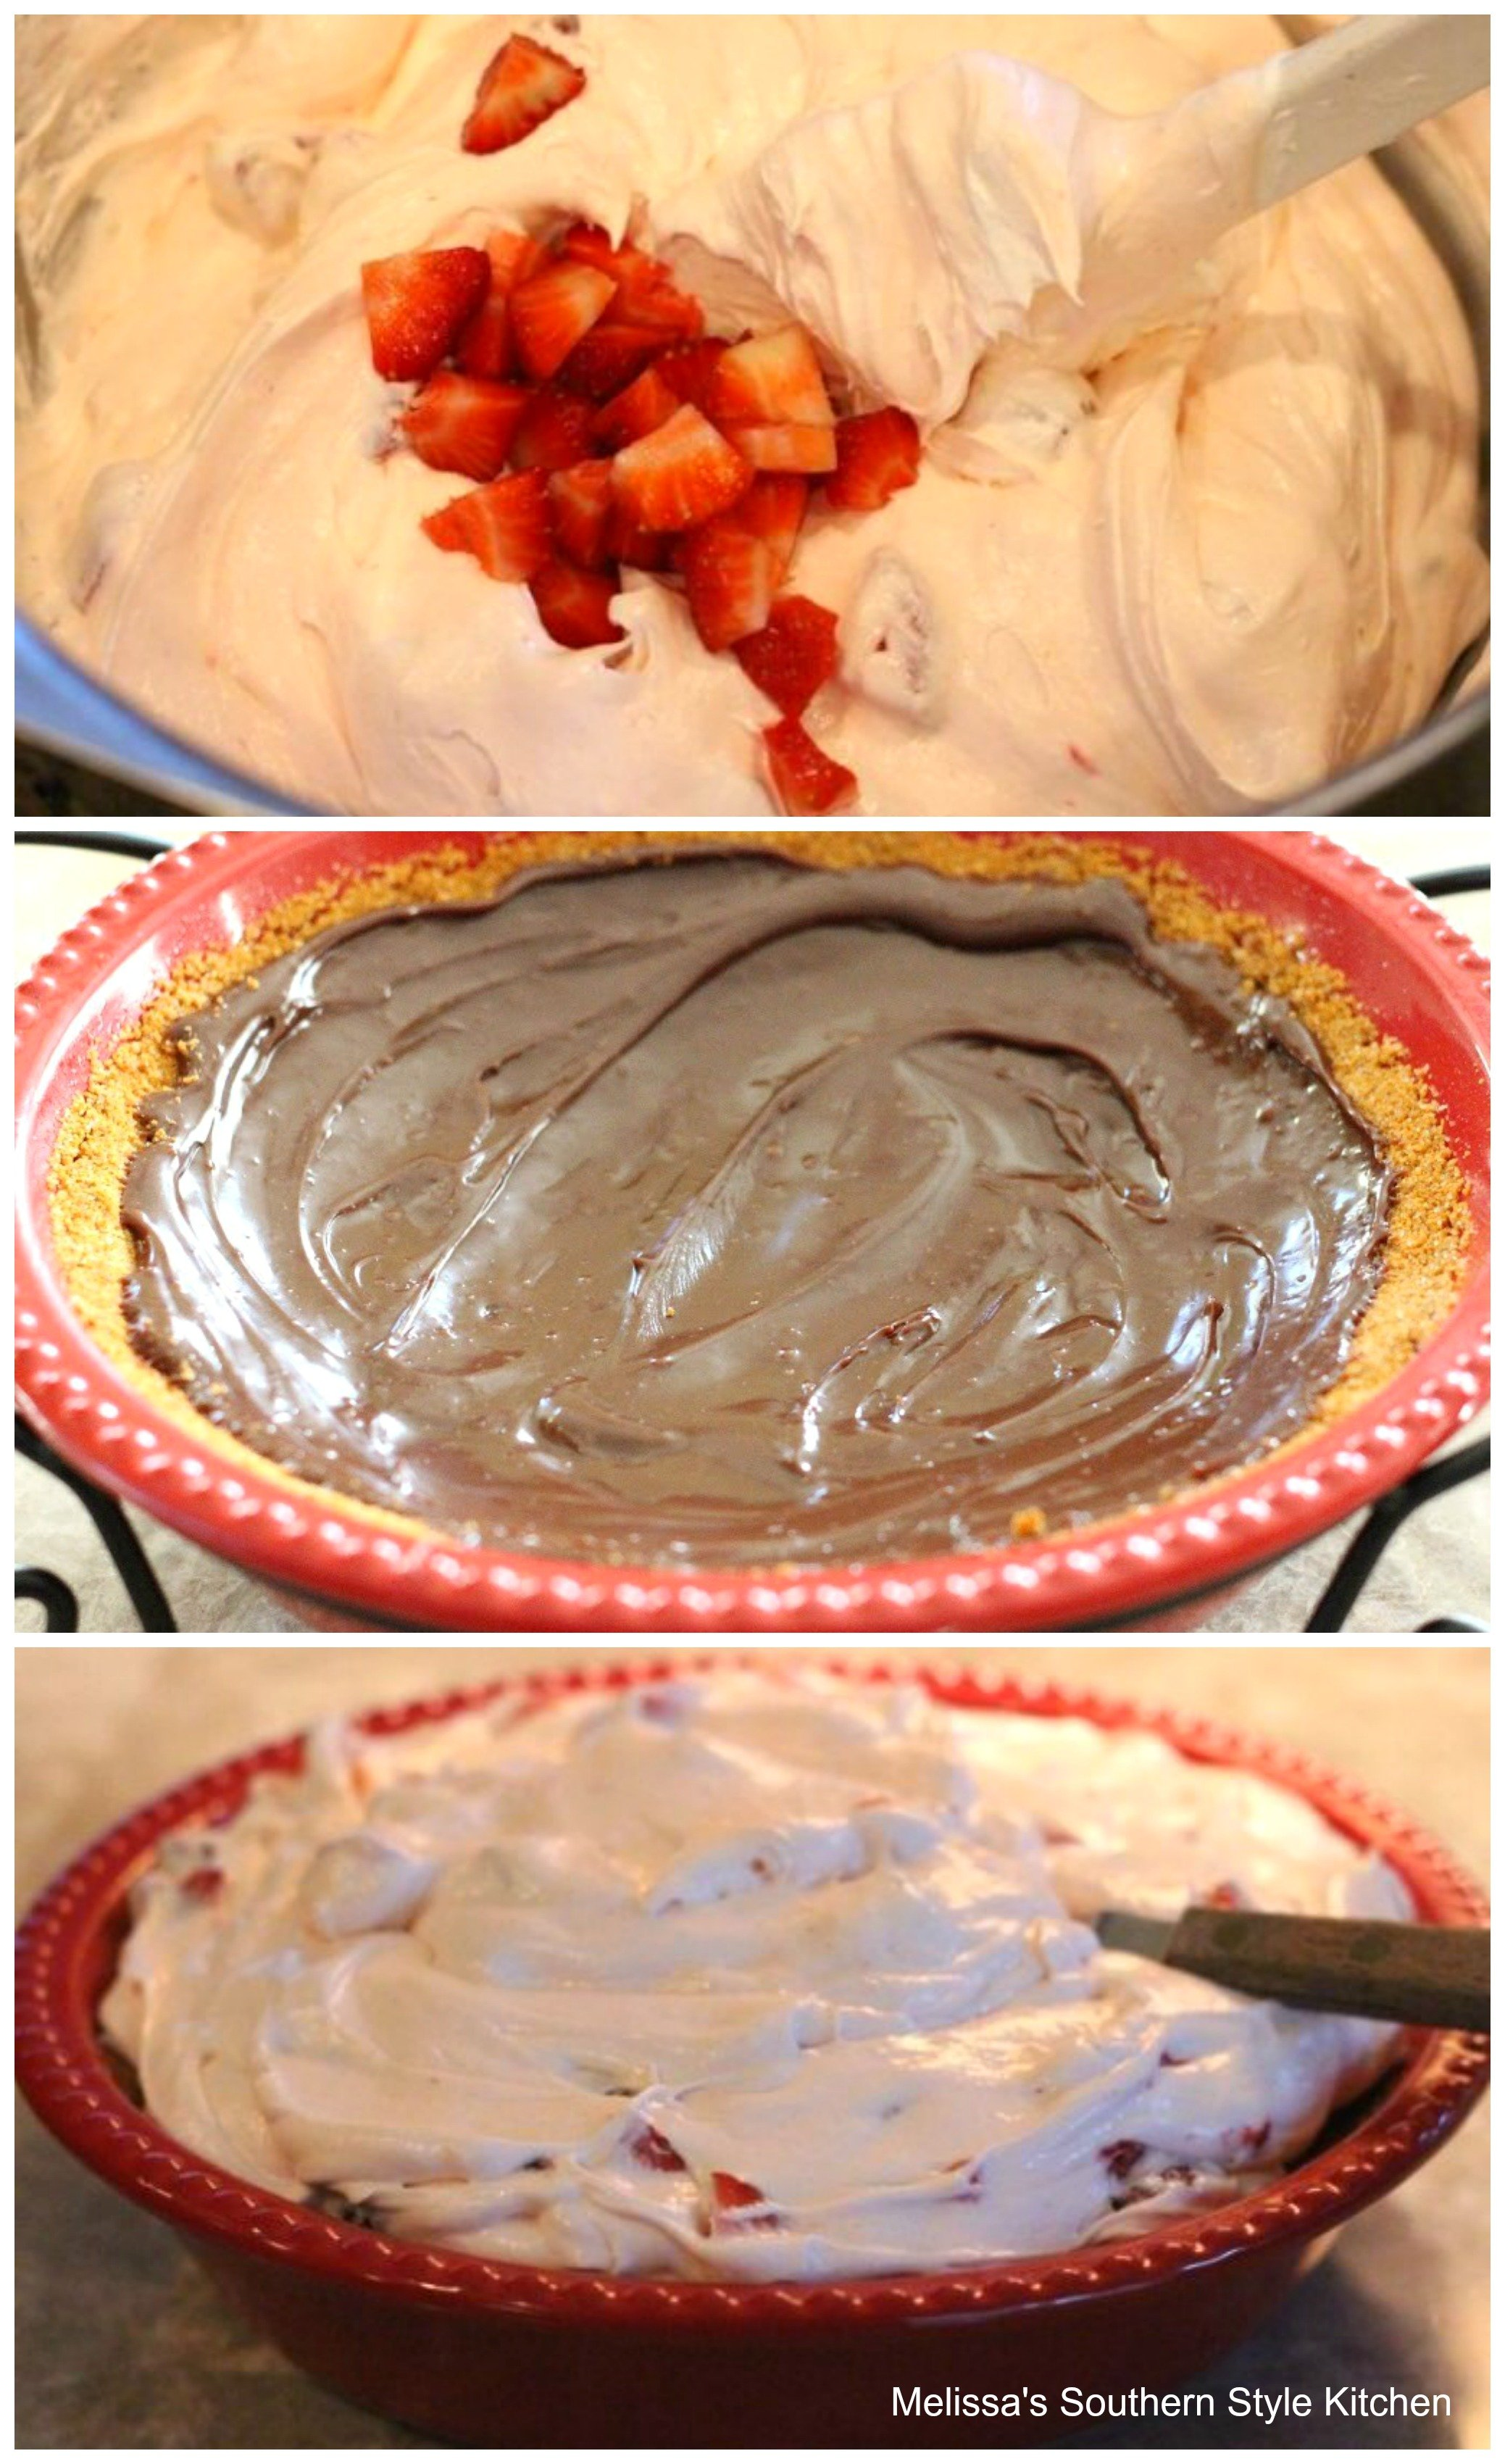 step-by-step images how to prepare strawberry pie